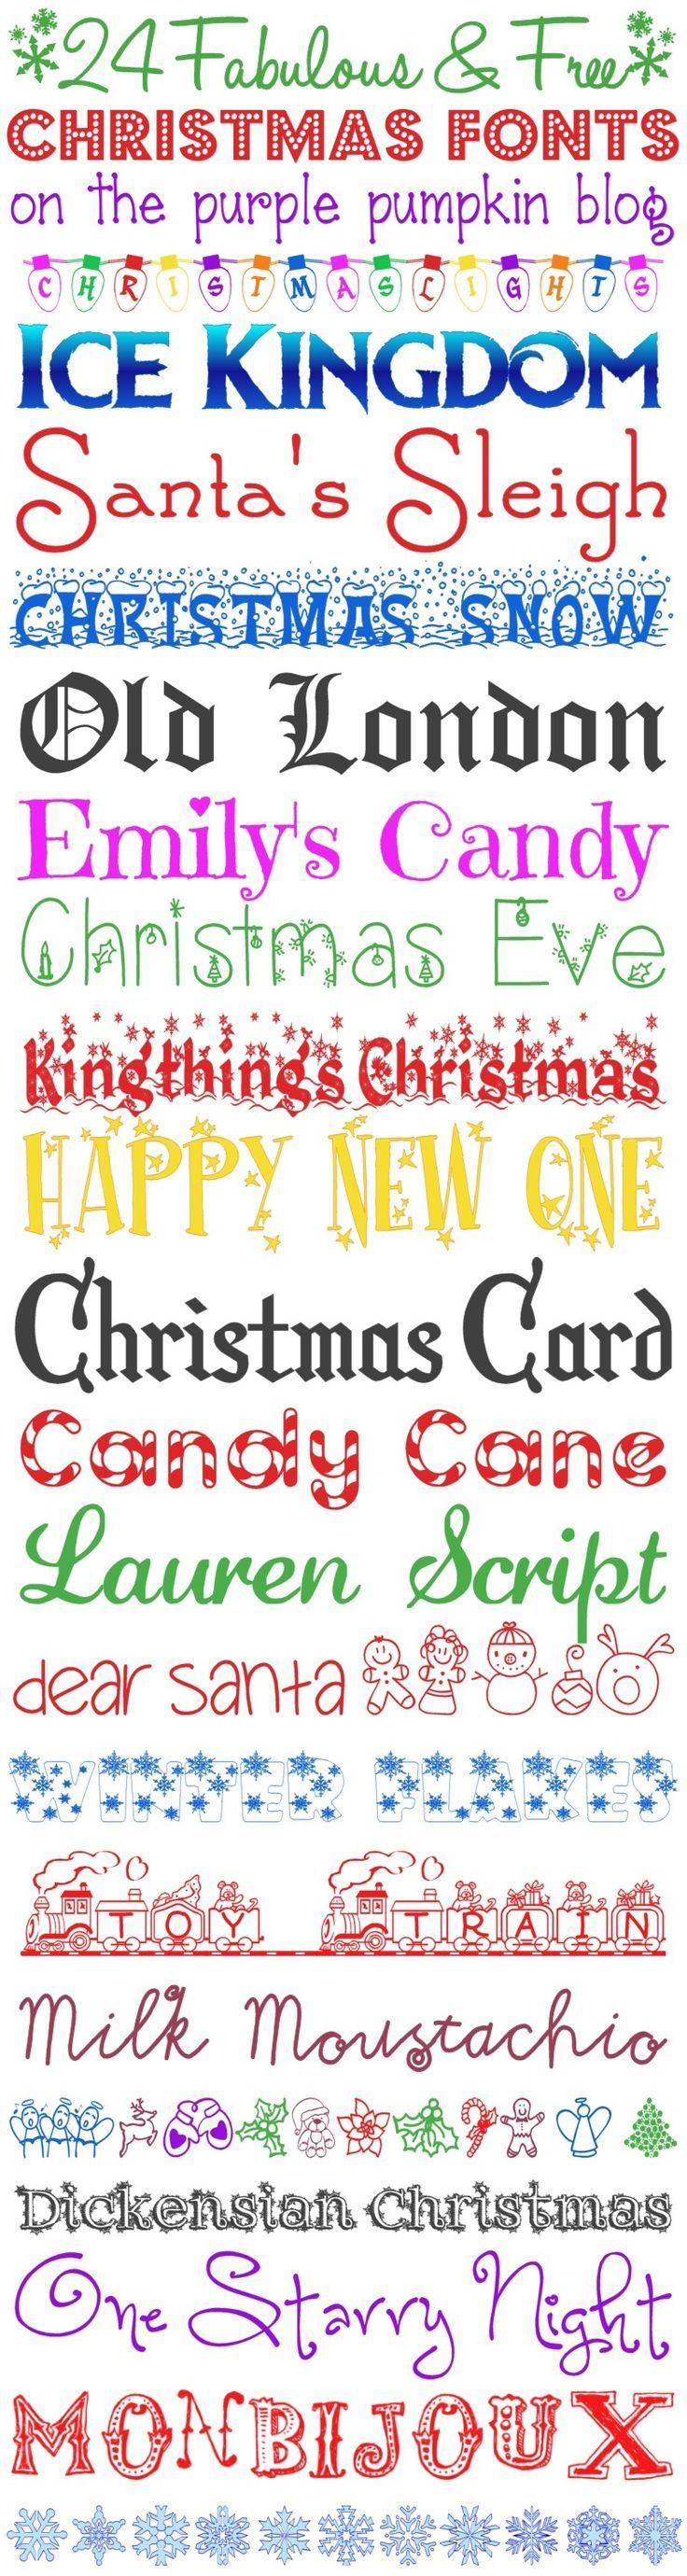 24 fabulous and free christmas fonts for all your christmas and festive projects  [ 736 x 2760 Pixel ]